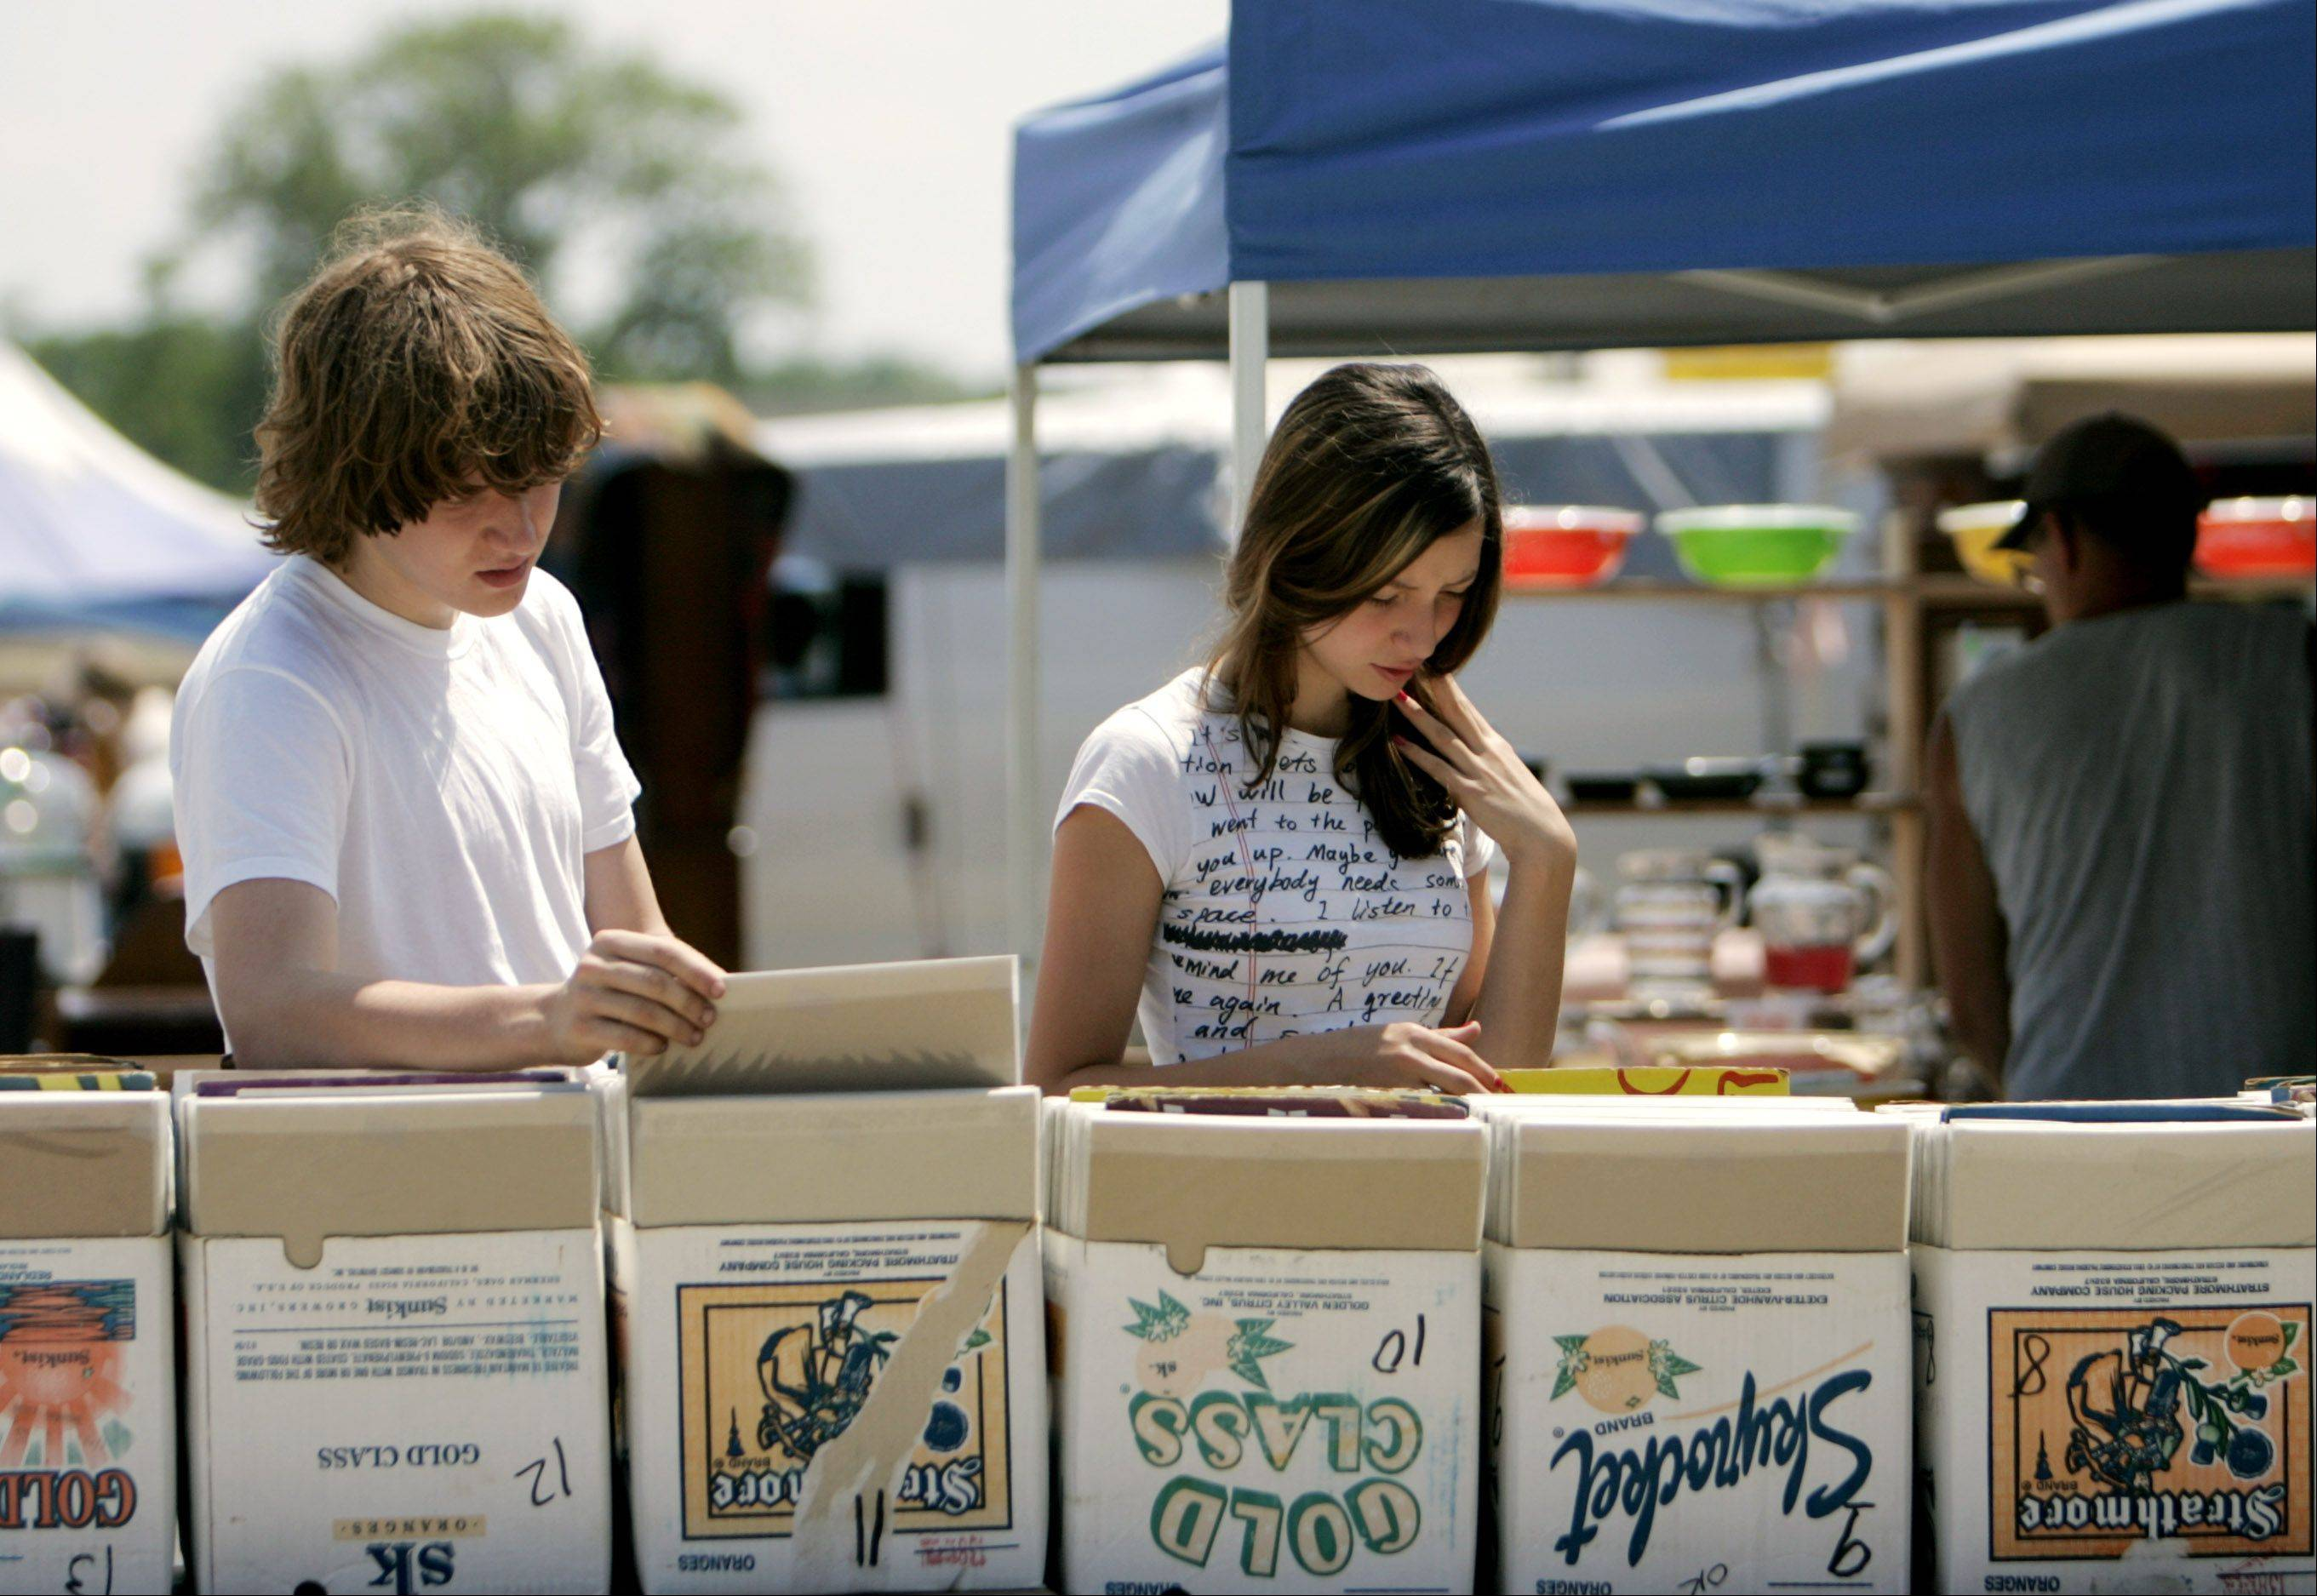 Shoppers look through old advertisements and posters at the Kane County Flea Market. Coach has sued the flea market and several vendors over the selling of counterfeit goods.